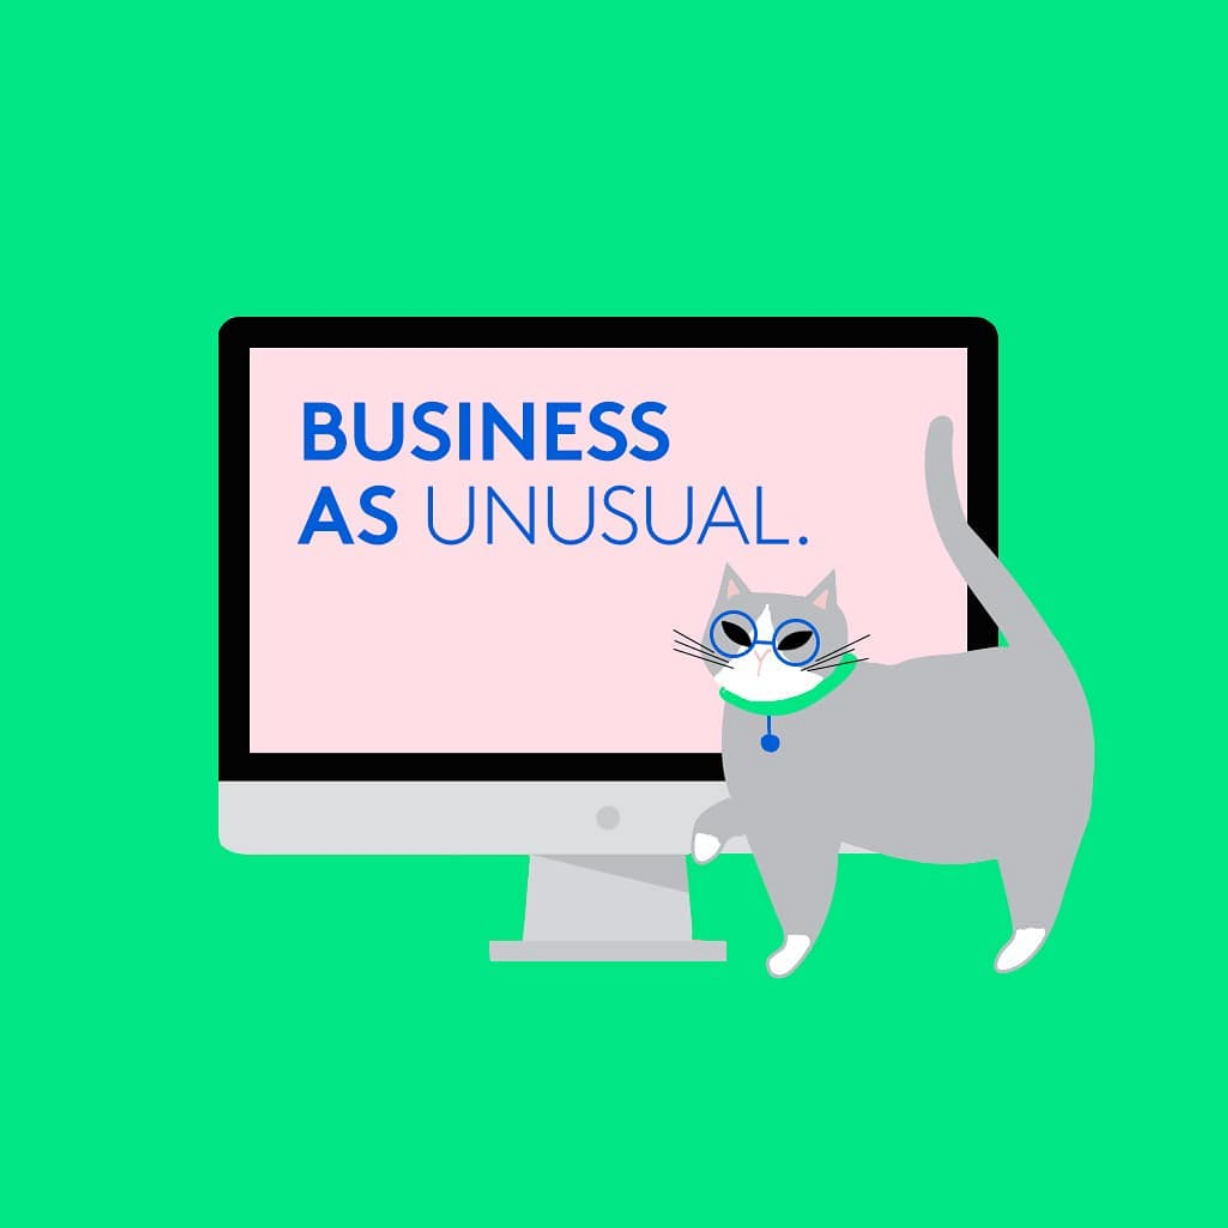 businesss-as-usual.jpg#asset:2913